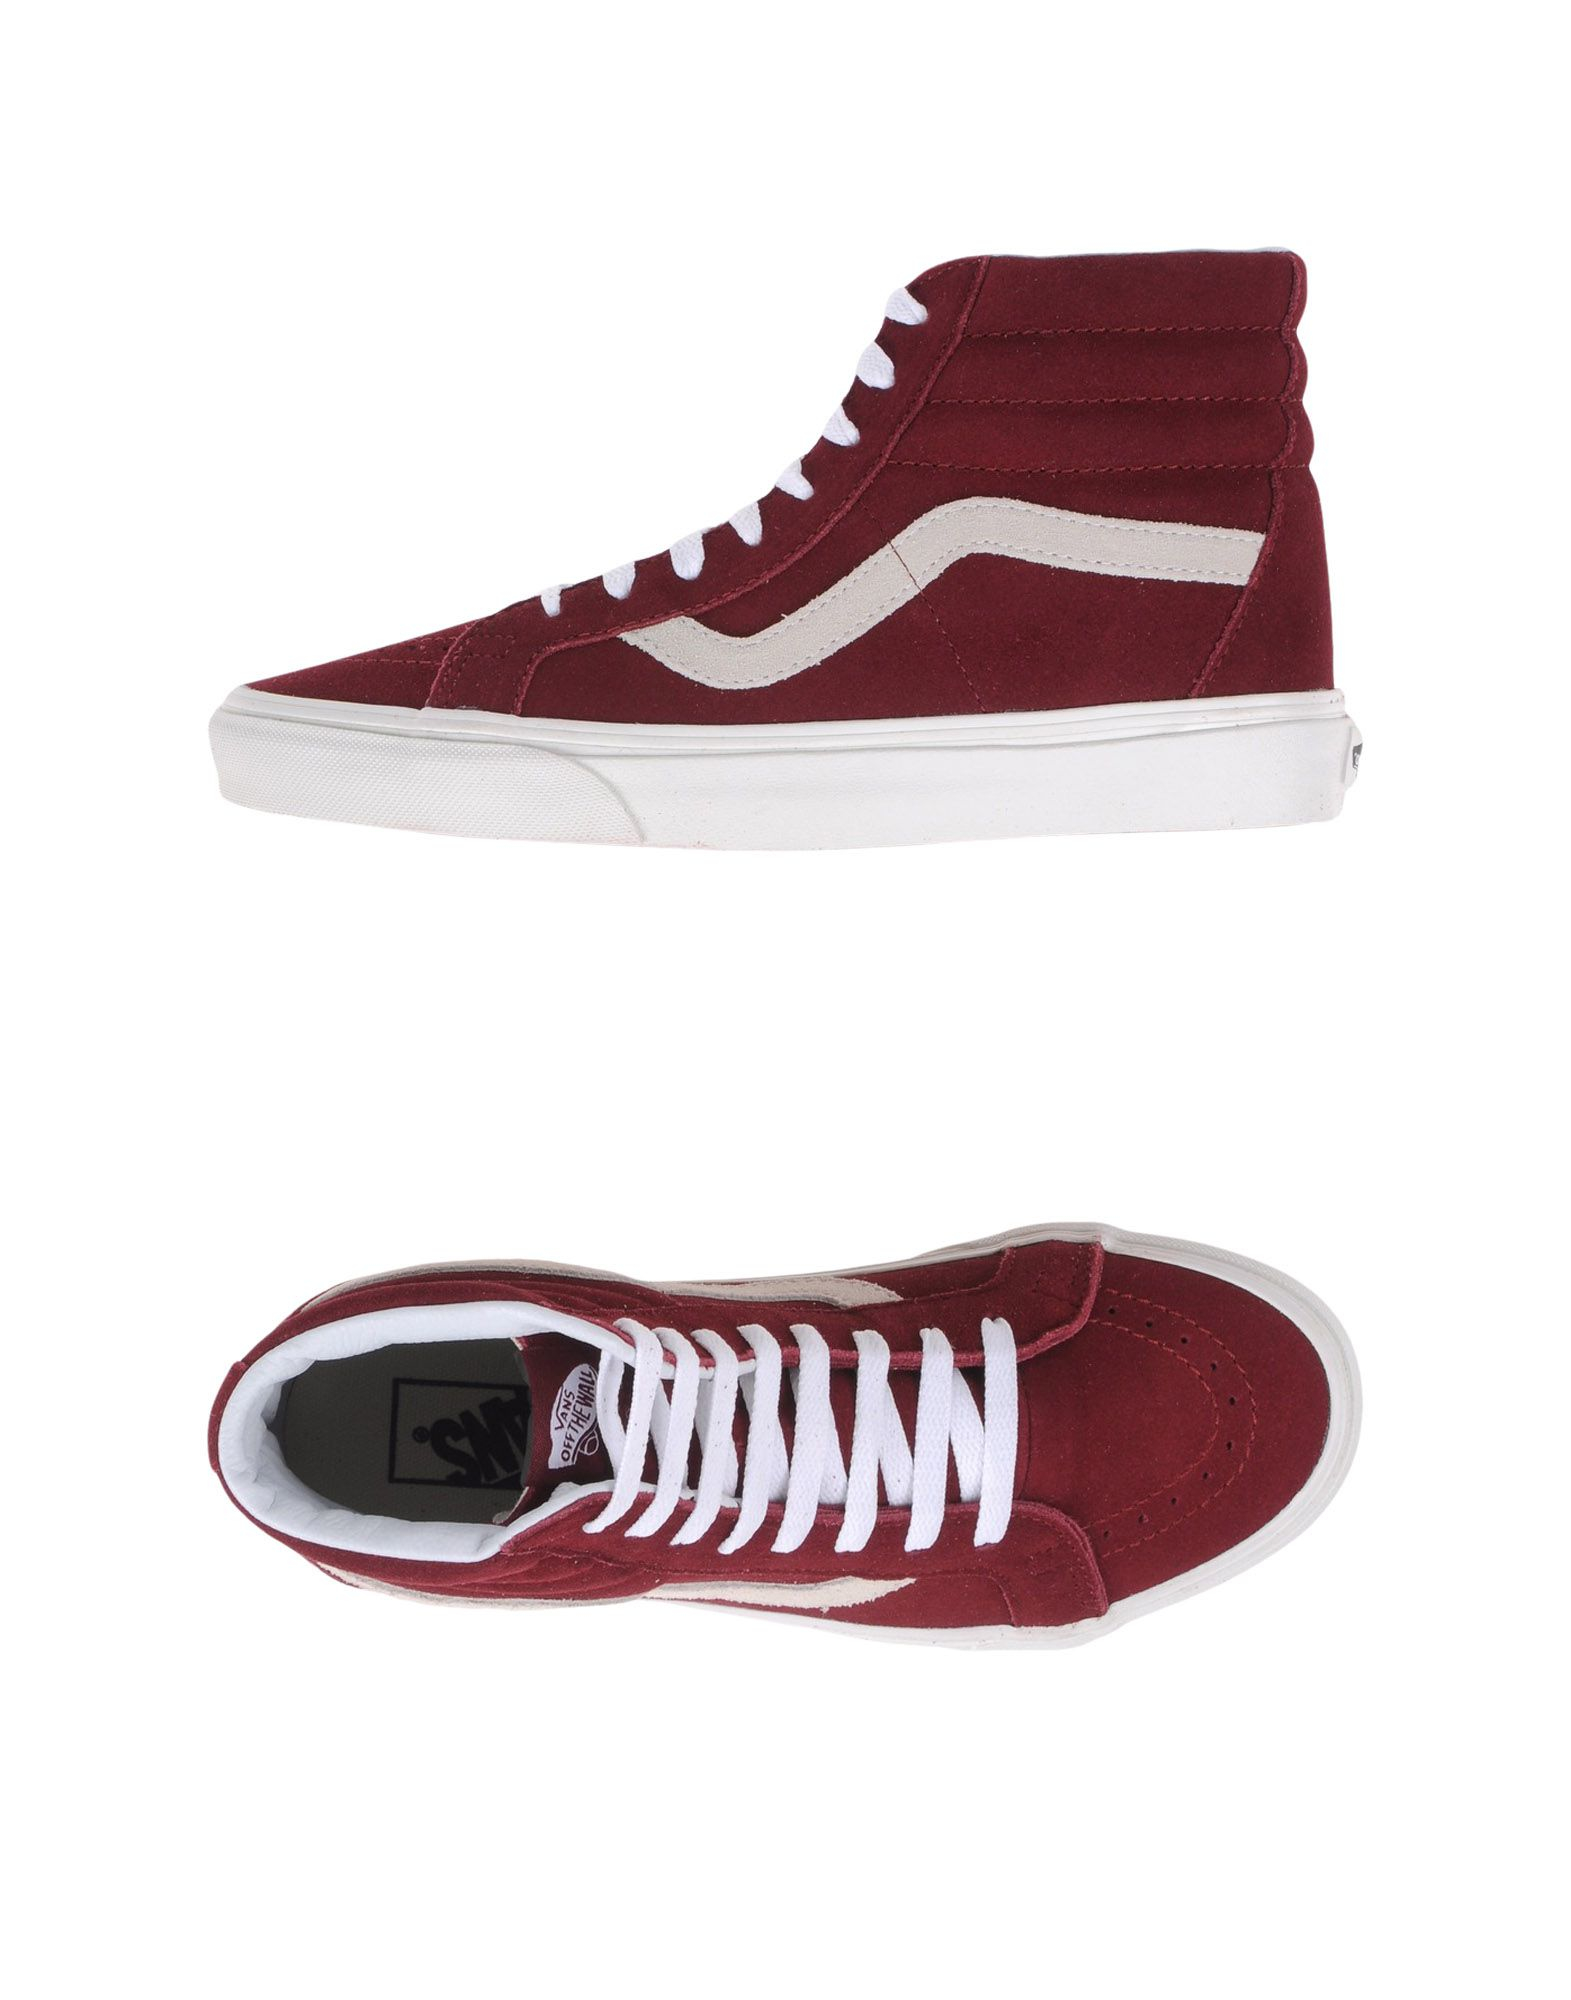 52fdaef58db8 Vans Maroon And Grey littleonesequipmenthire.co.uk